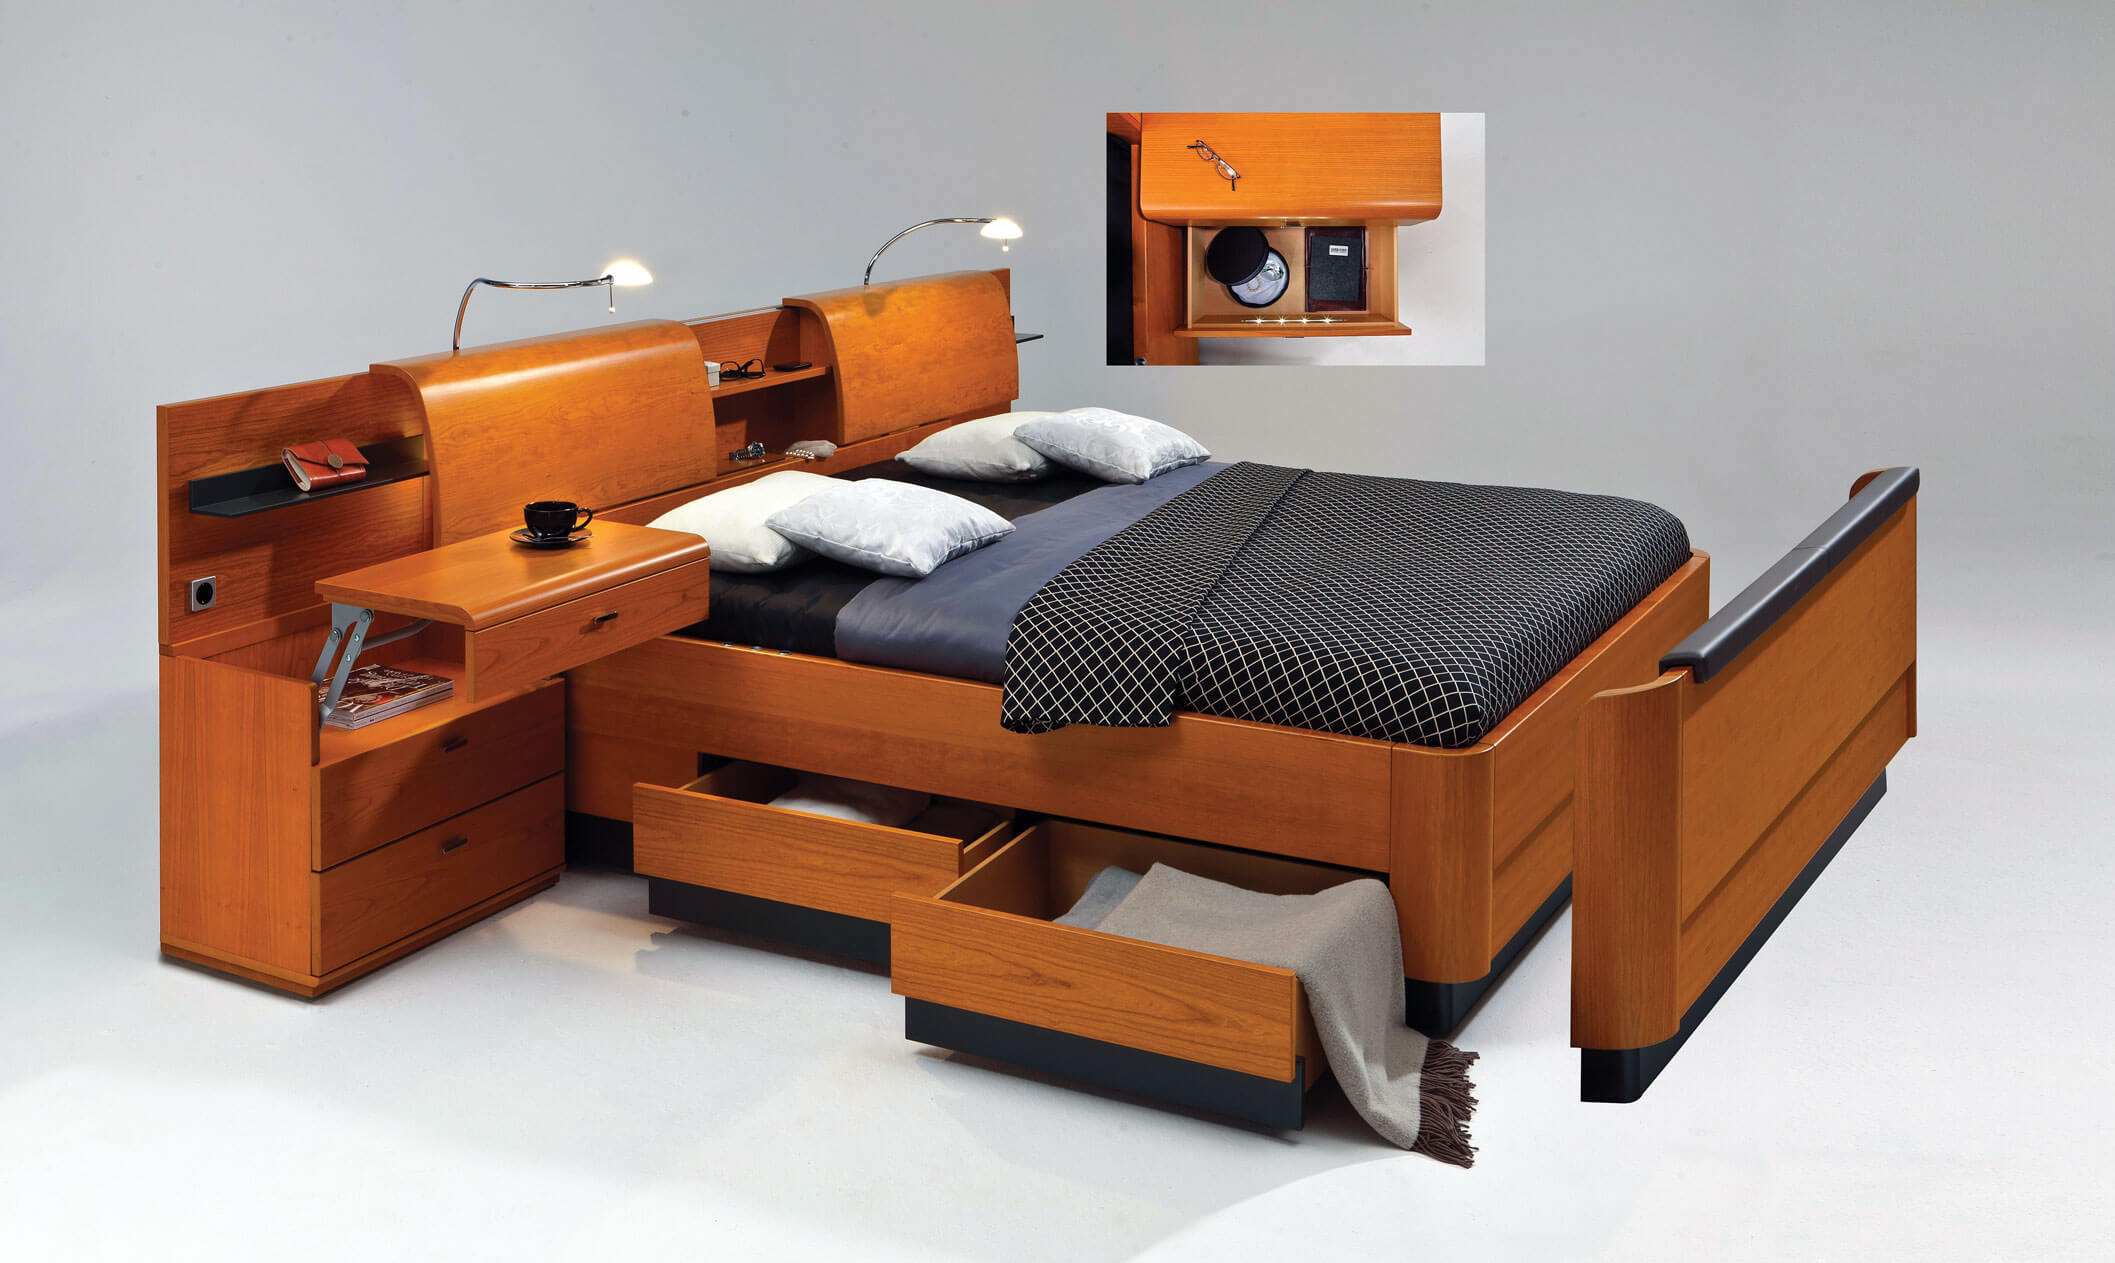 furniture multifunction. Multifunctional-furniture Furniture Multifunction E